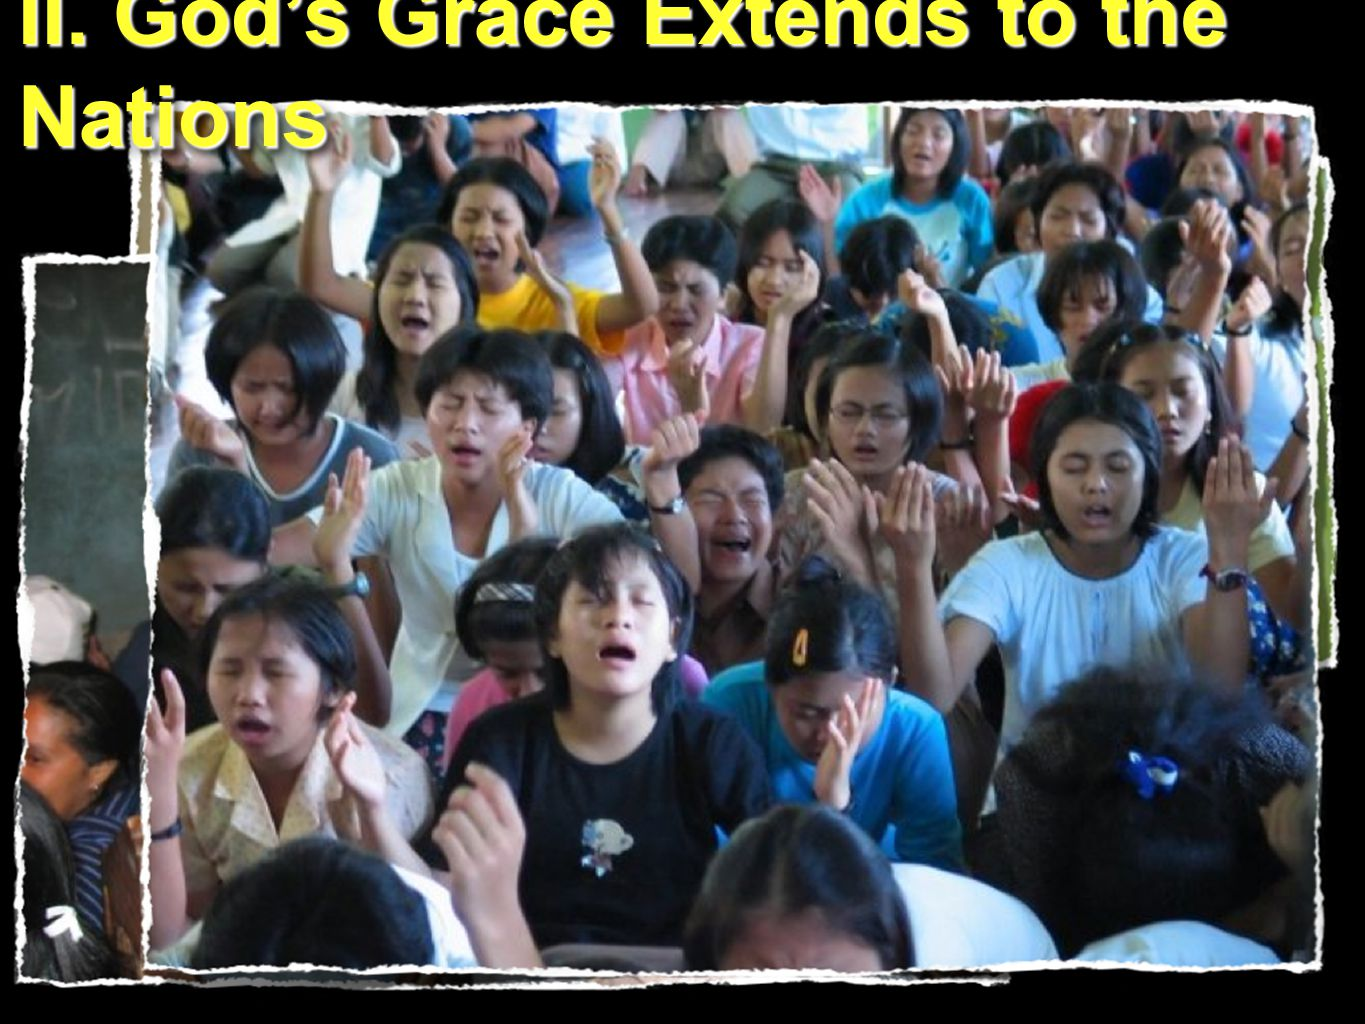 II. God's Grace Extends to the Nations